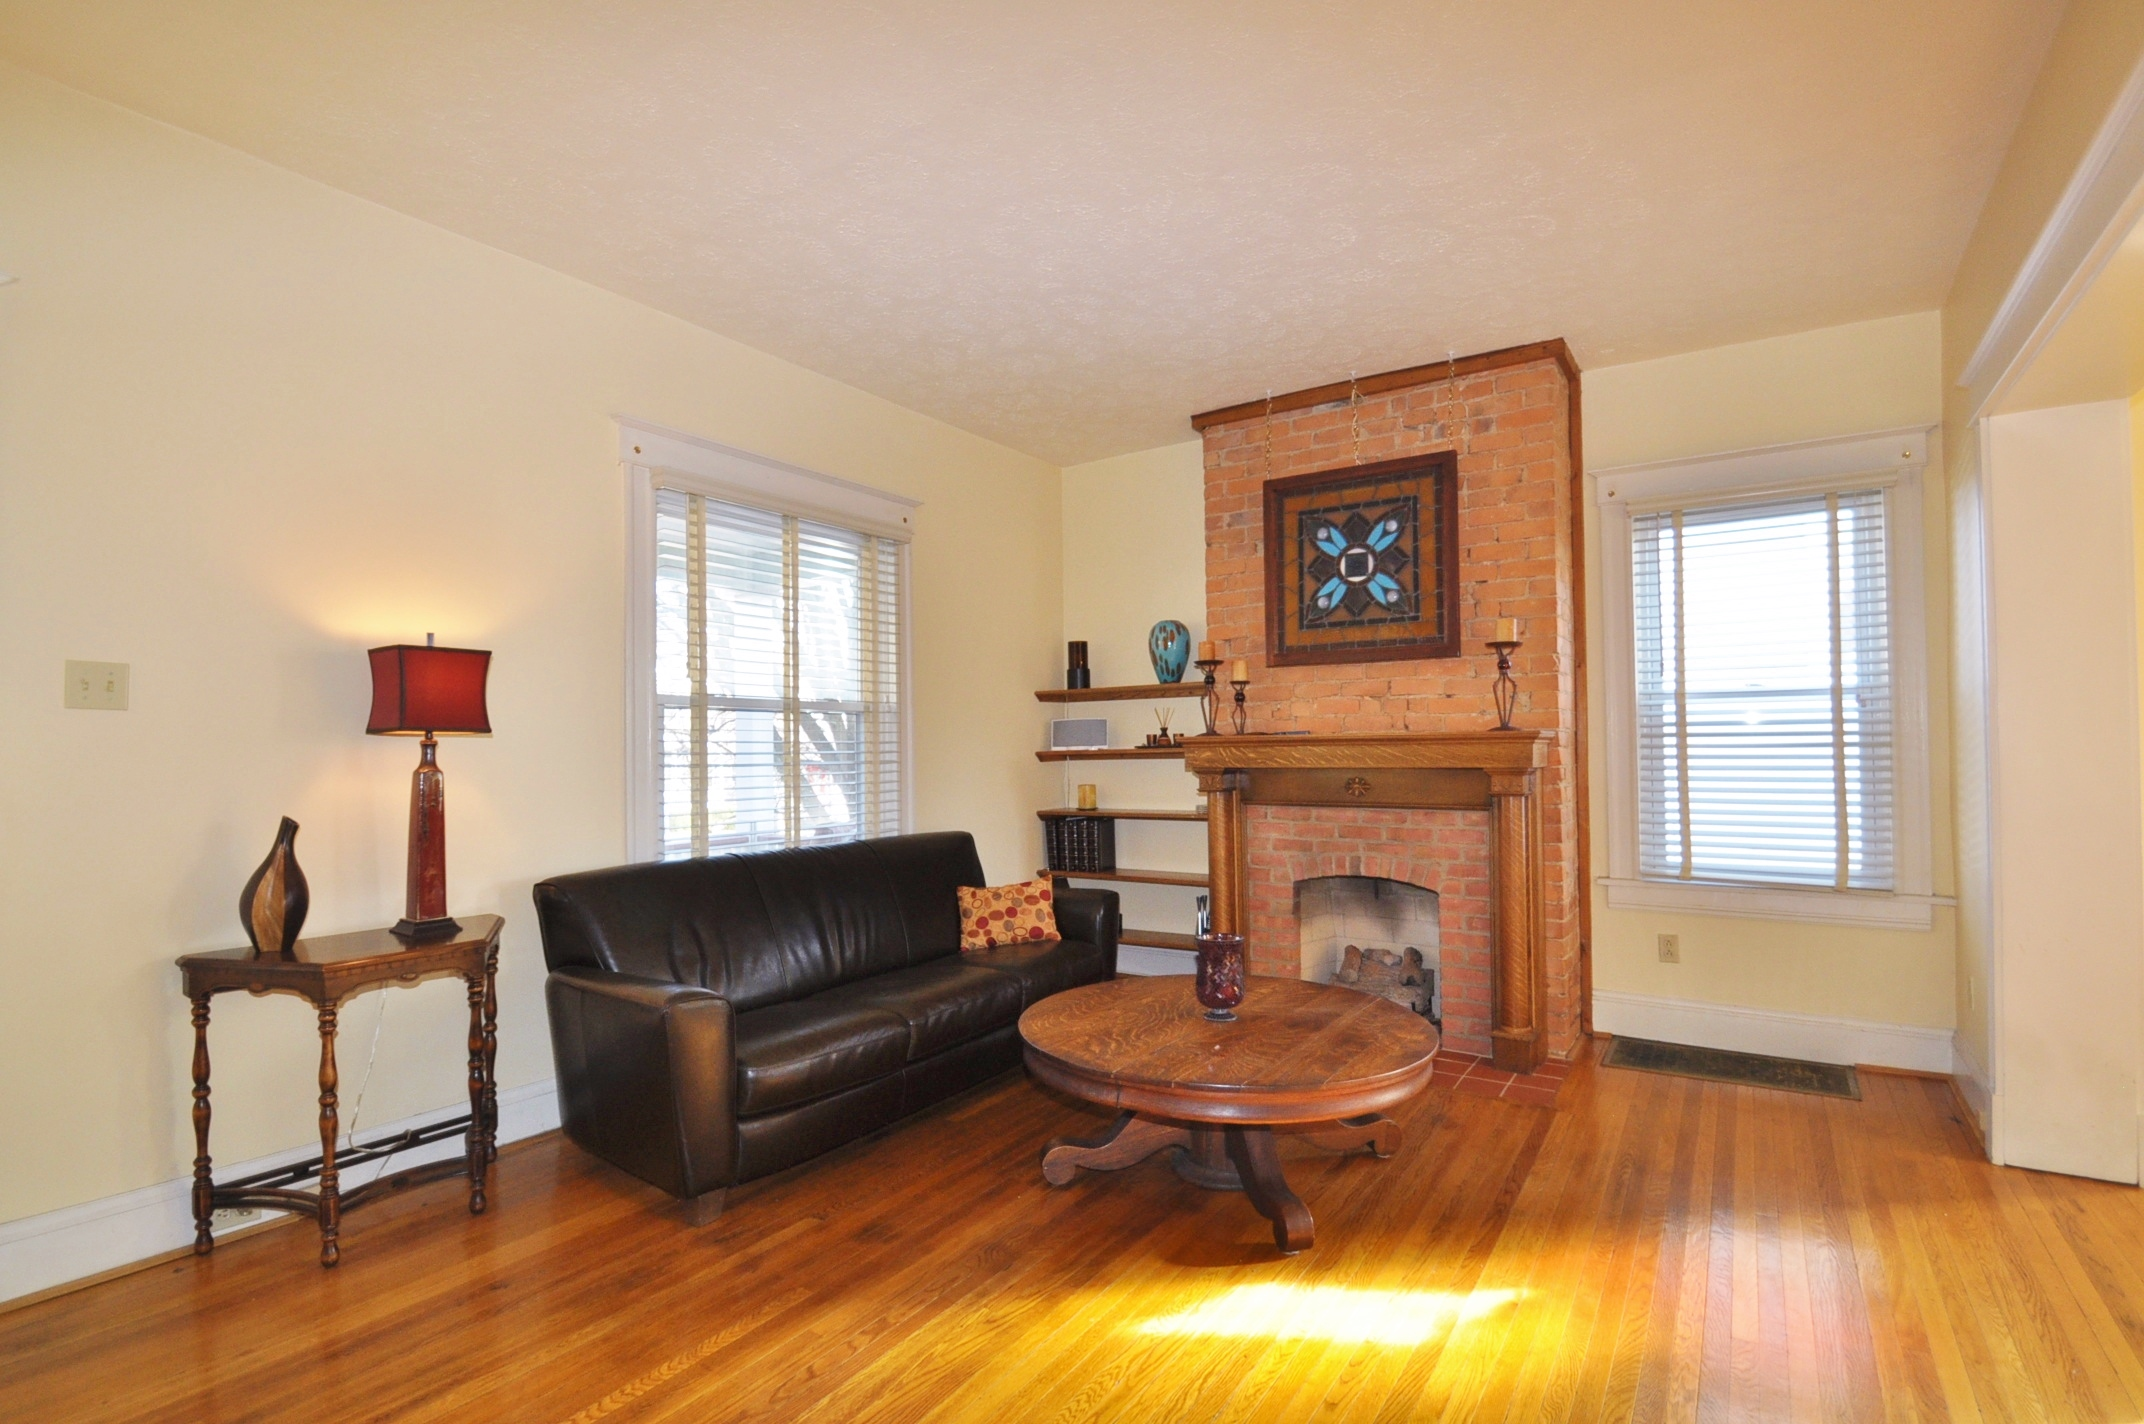 formal living room with brick fireplace best area rug for small exposed works any style cincinnati homes and real estate image